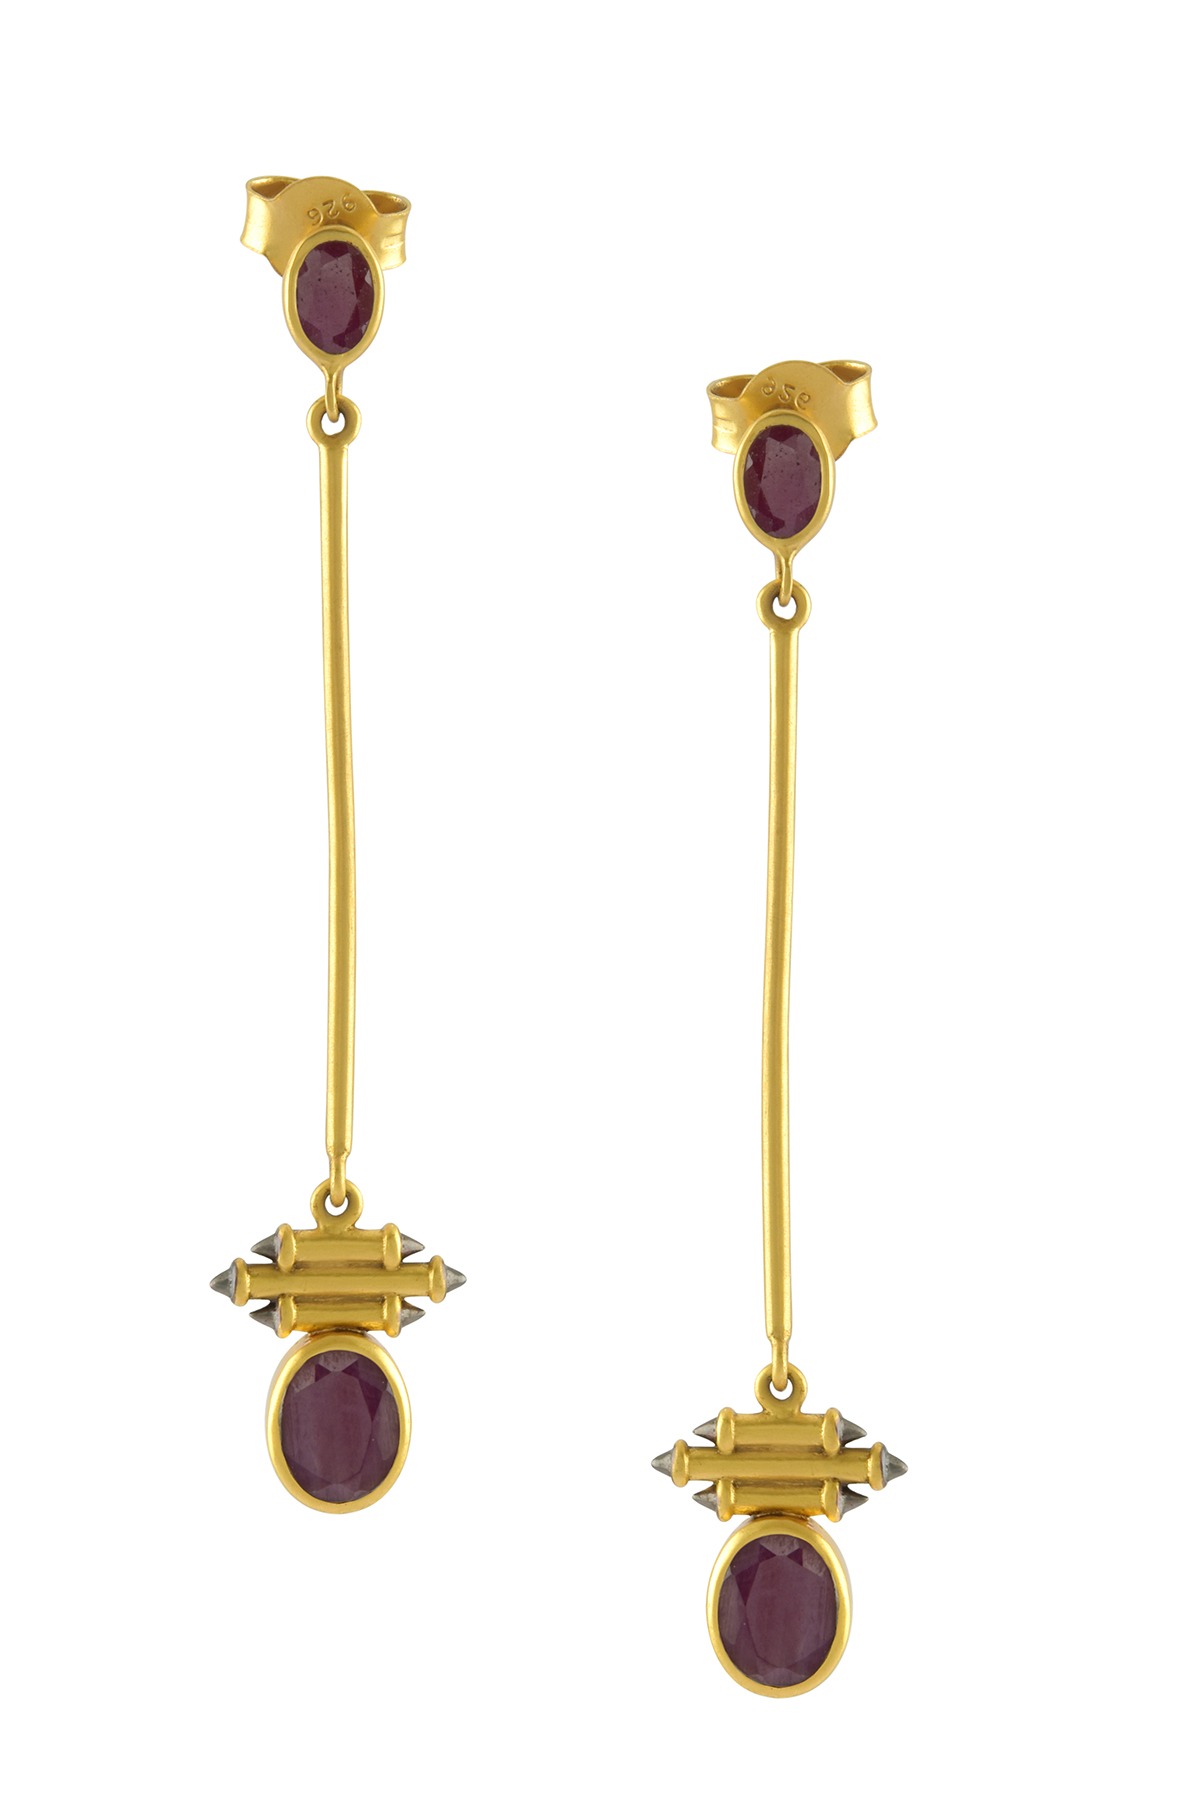 7c43f5b4ac4cac Silver Gold Plated Oval Garnet Long Drop Earrings